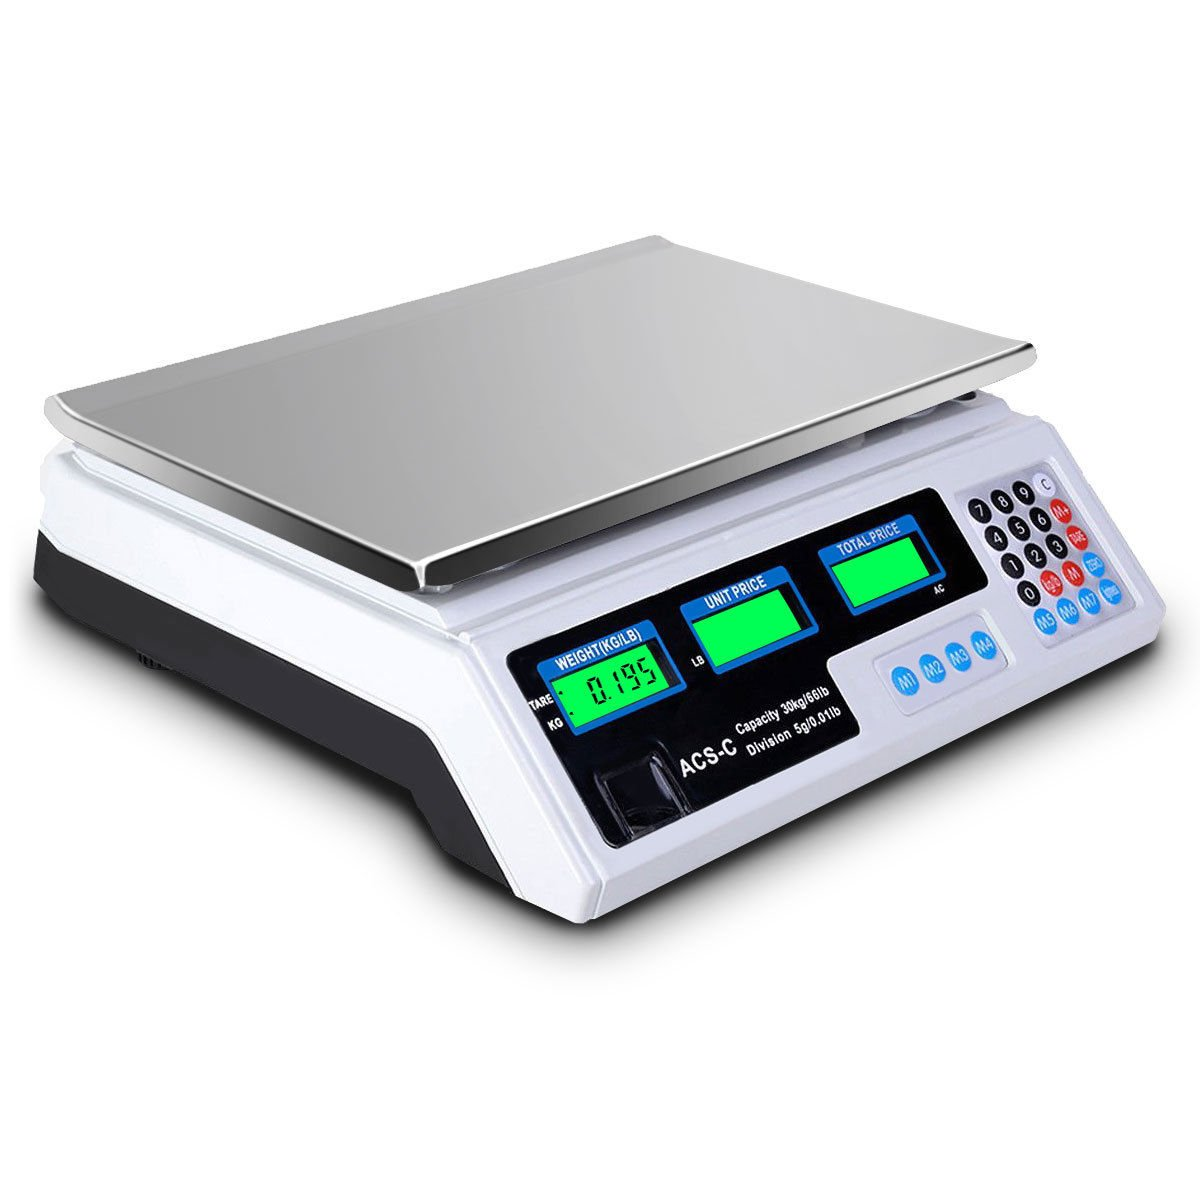 66LBS Max Weight LCD Display Digital Weight Scale Retail Outlets Food Market Supermarket Grocery Stores Post Office Logistics Price Computing Scale Waterproof Weighing Platform Stainless Steel Top by Almacén